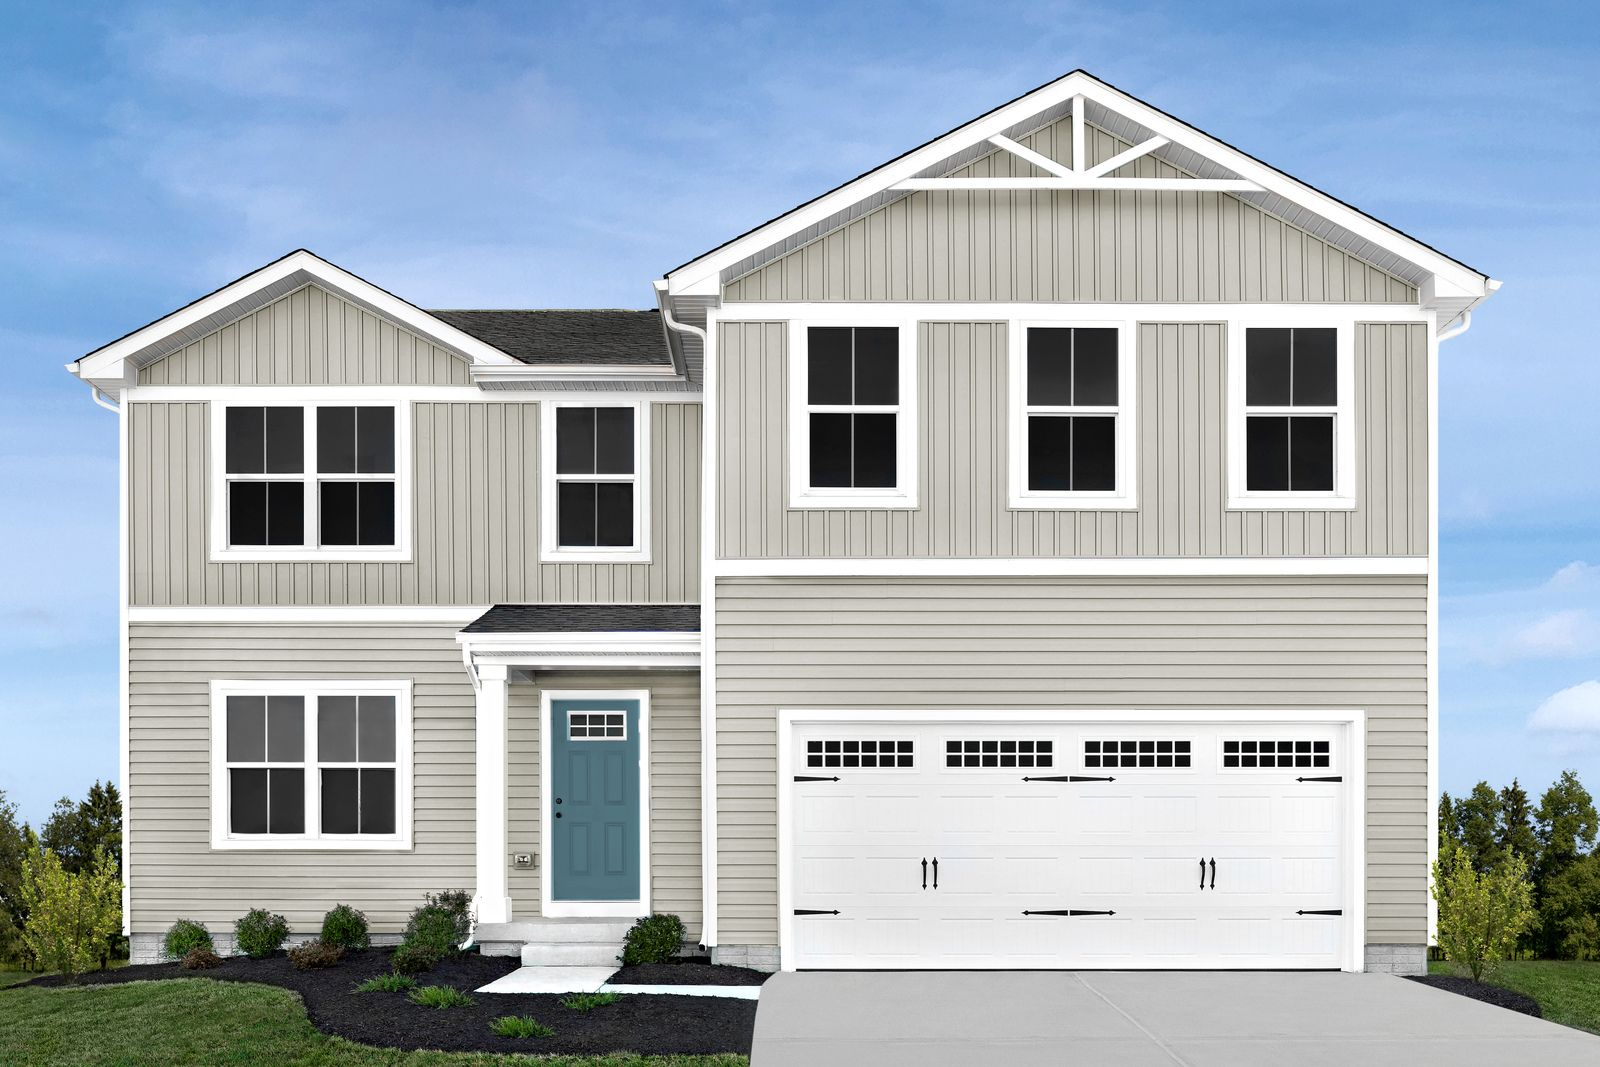 BEST NEW HOME VALUE CLOSE TO MOORESVILLE AND LAKE NORMAN:New homesites just released!Schedule a Visitto Weathers Creek to claim yours today.